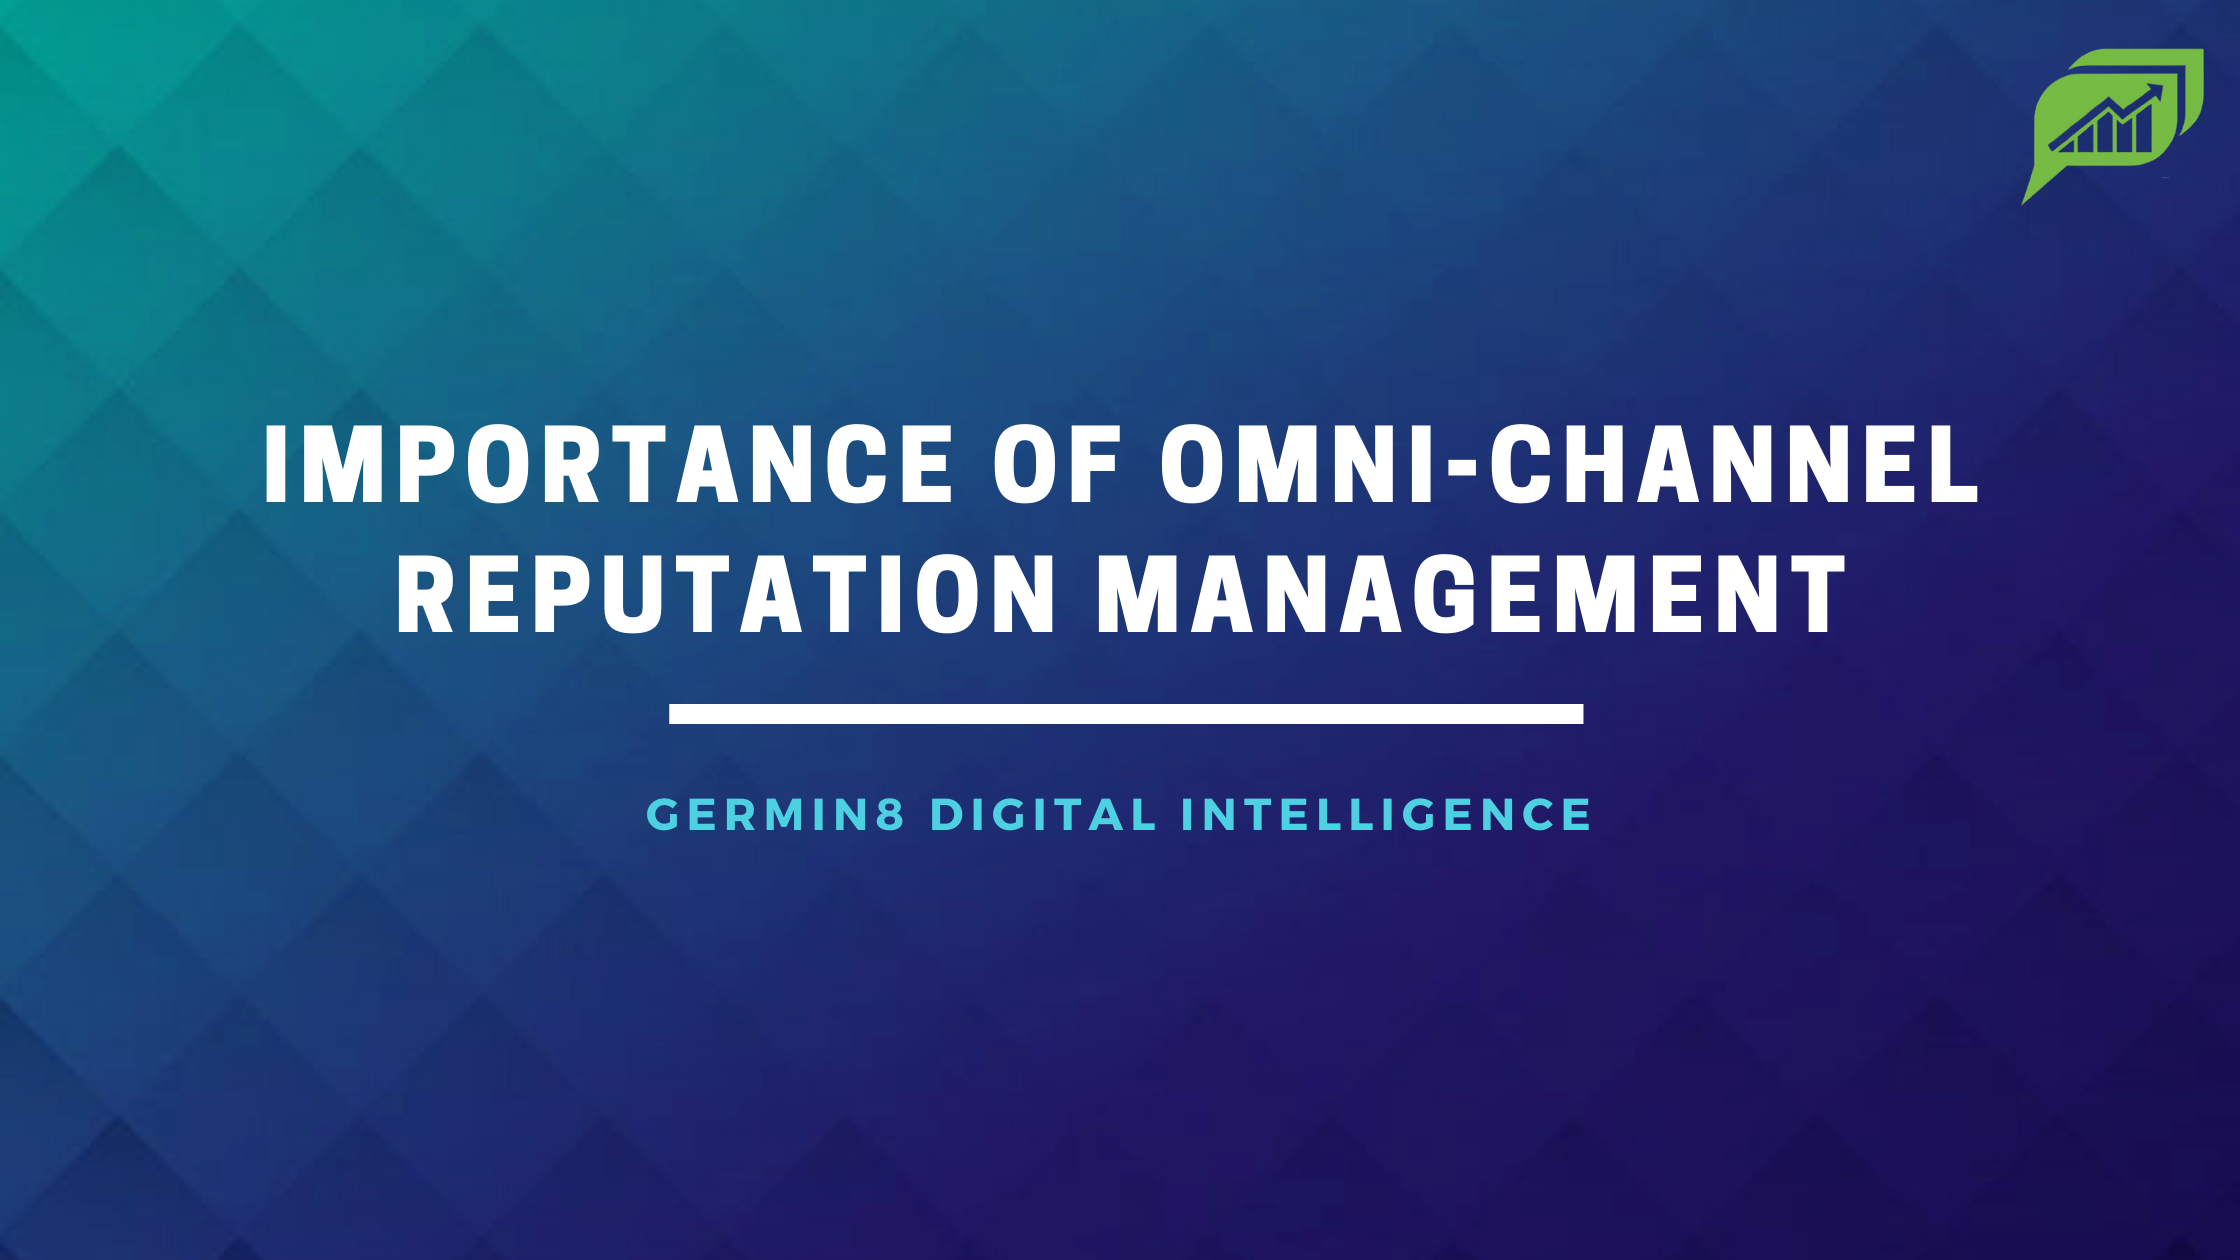 Importance-Of-Omni-Channel-Reputation-Management